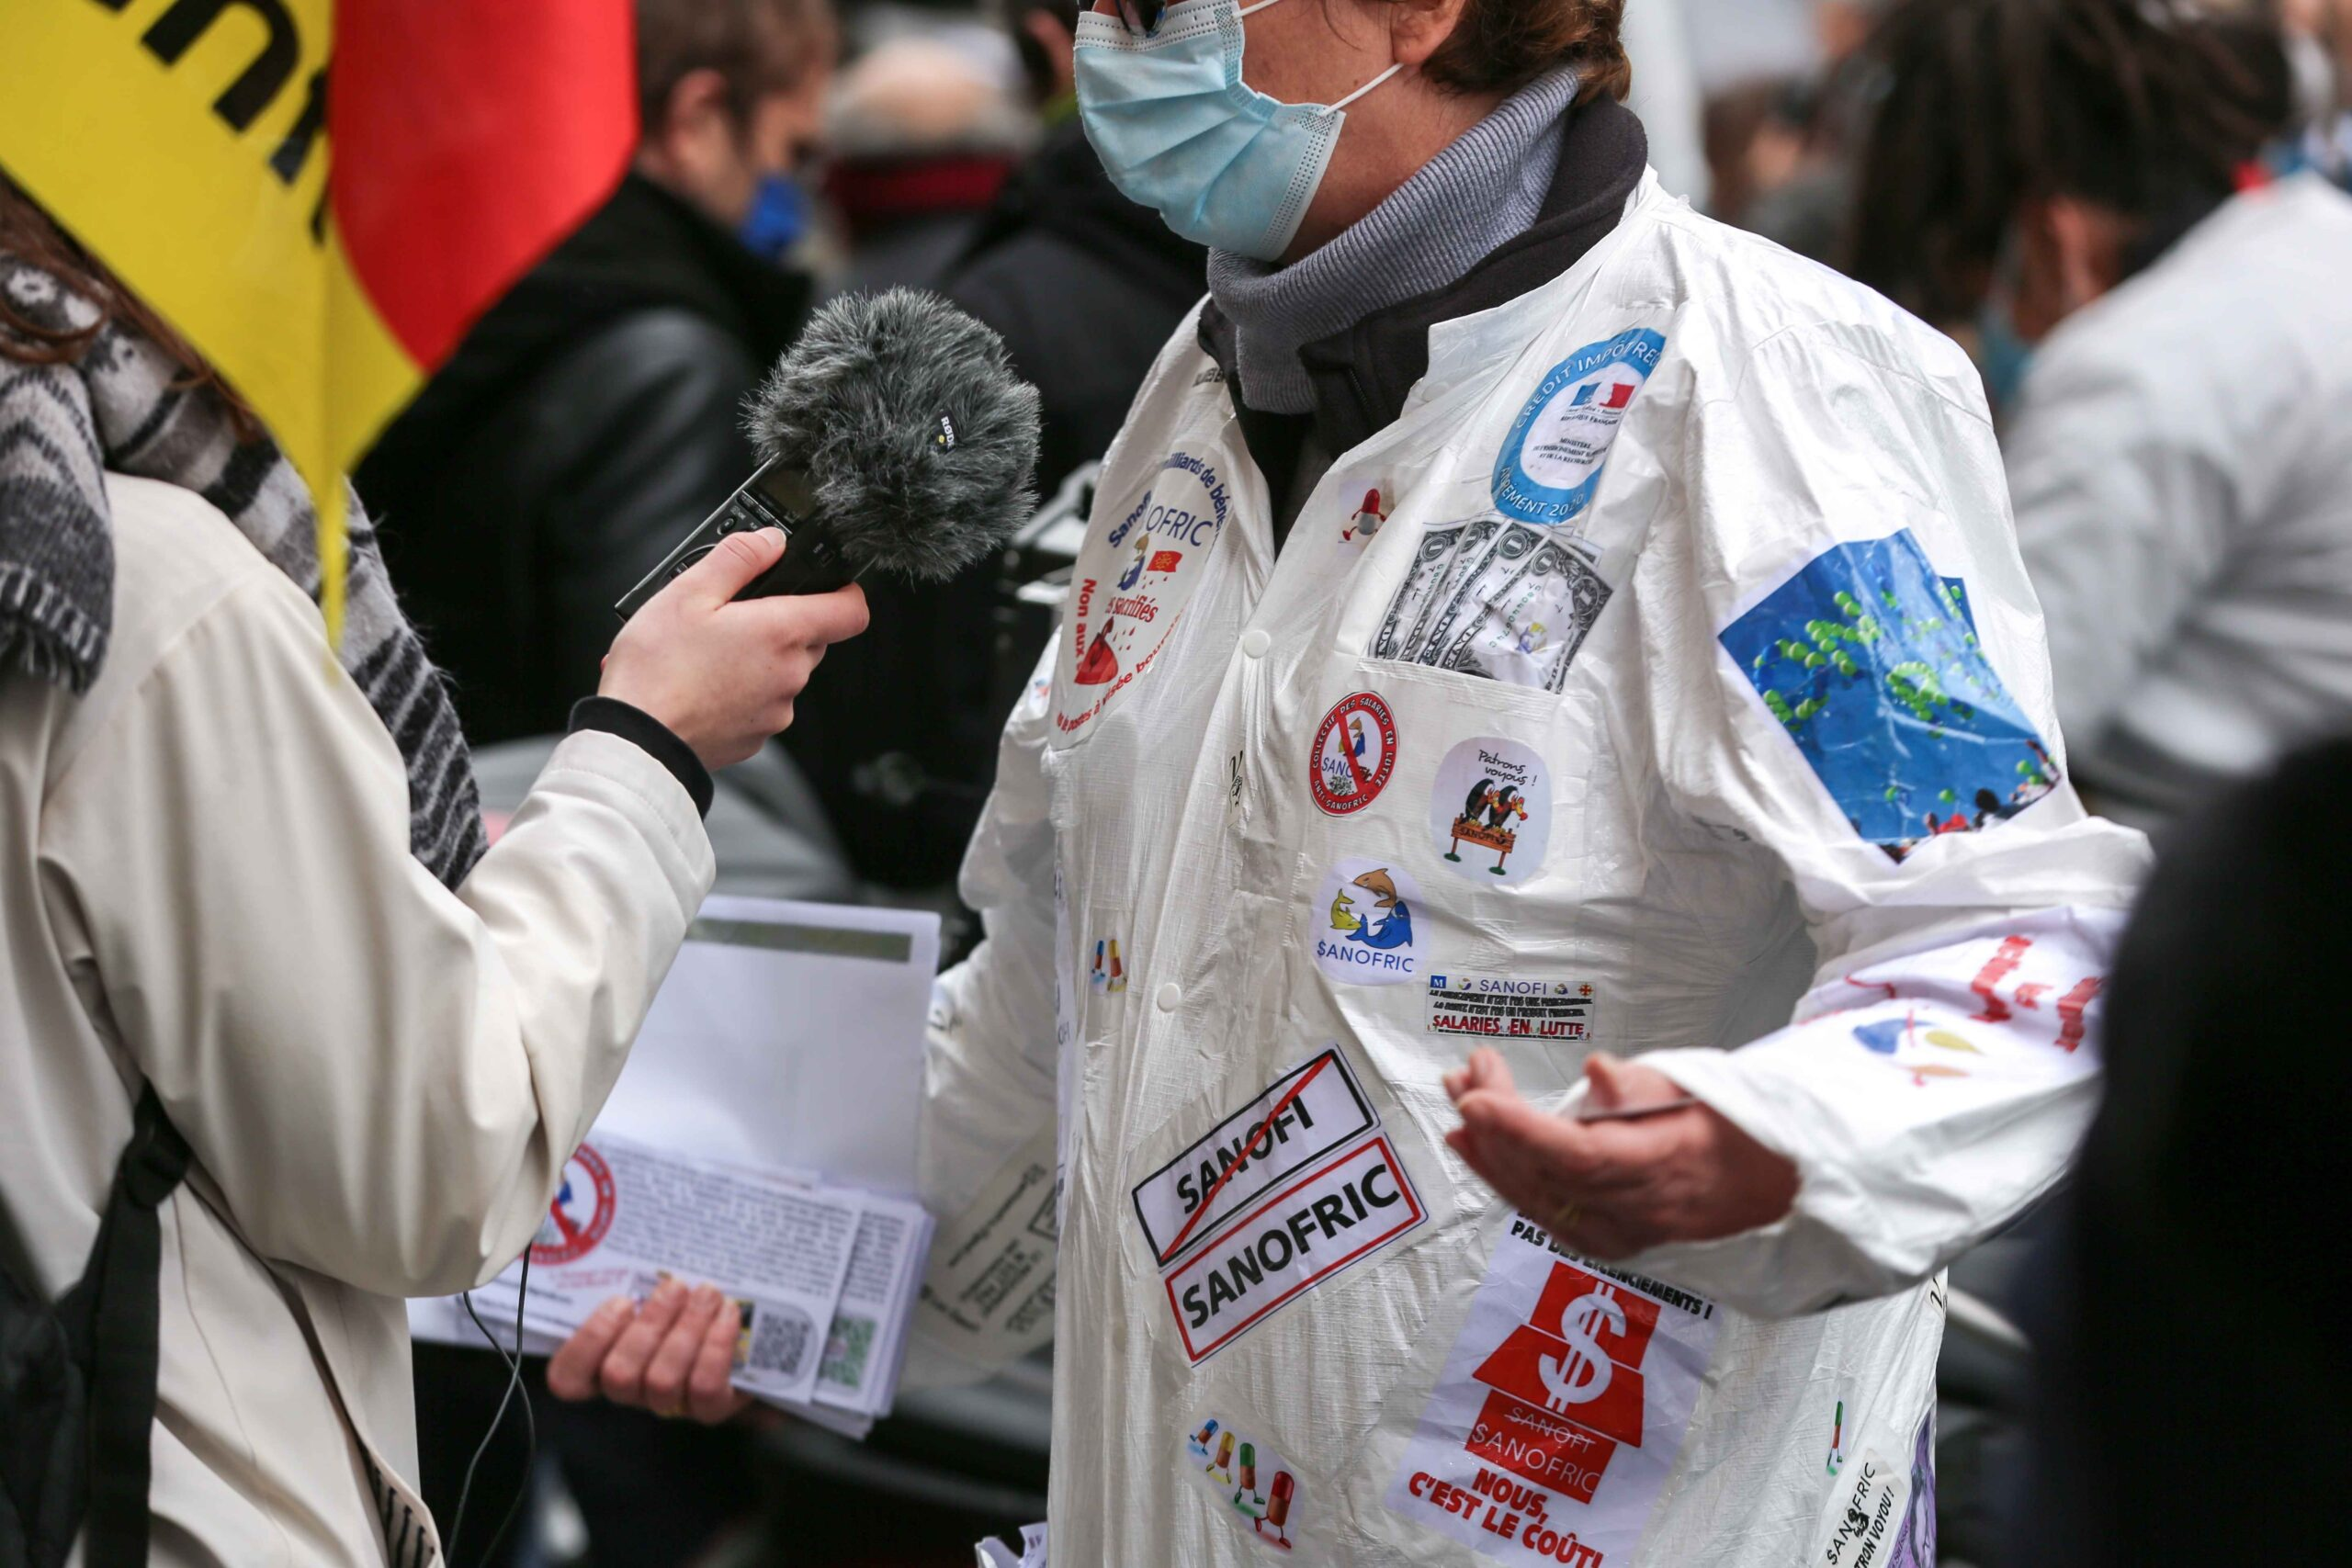 A demonstrator, wearing a lab coat, talks to the press during a gathering in front of the French pharma giant Sanofi group headquarters in Paris, on February 4, 202, during a day of action to highlight the current economic and cultural difficulties being e